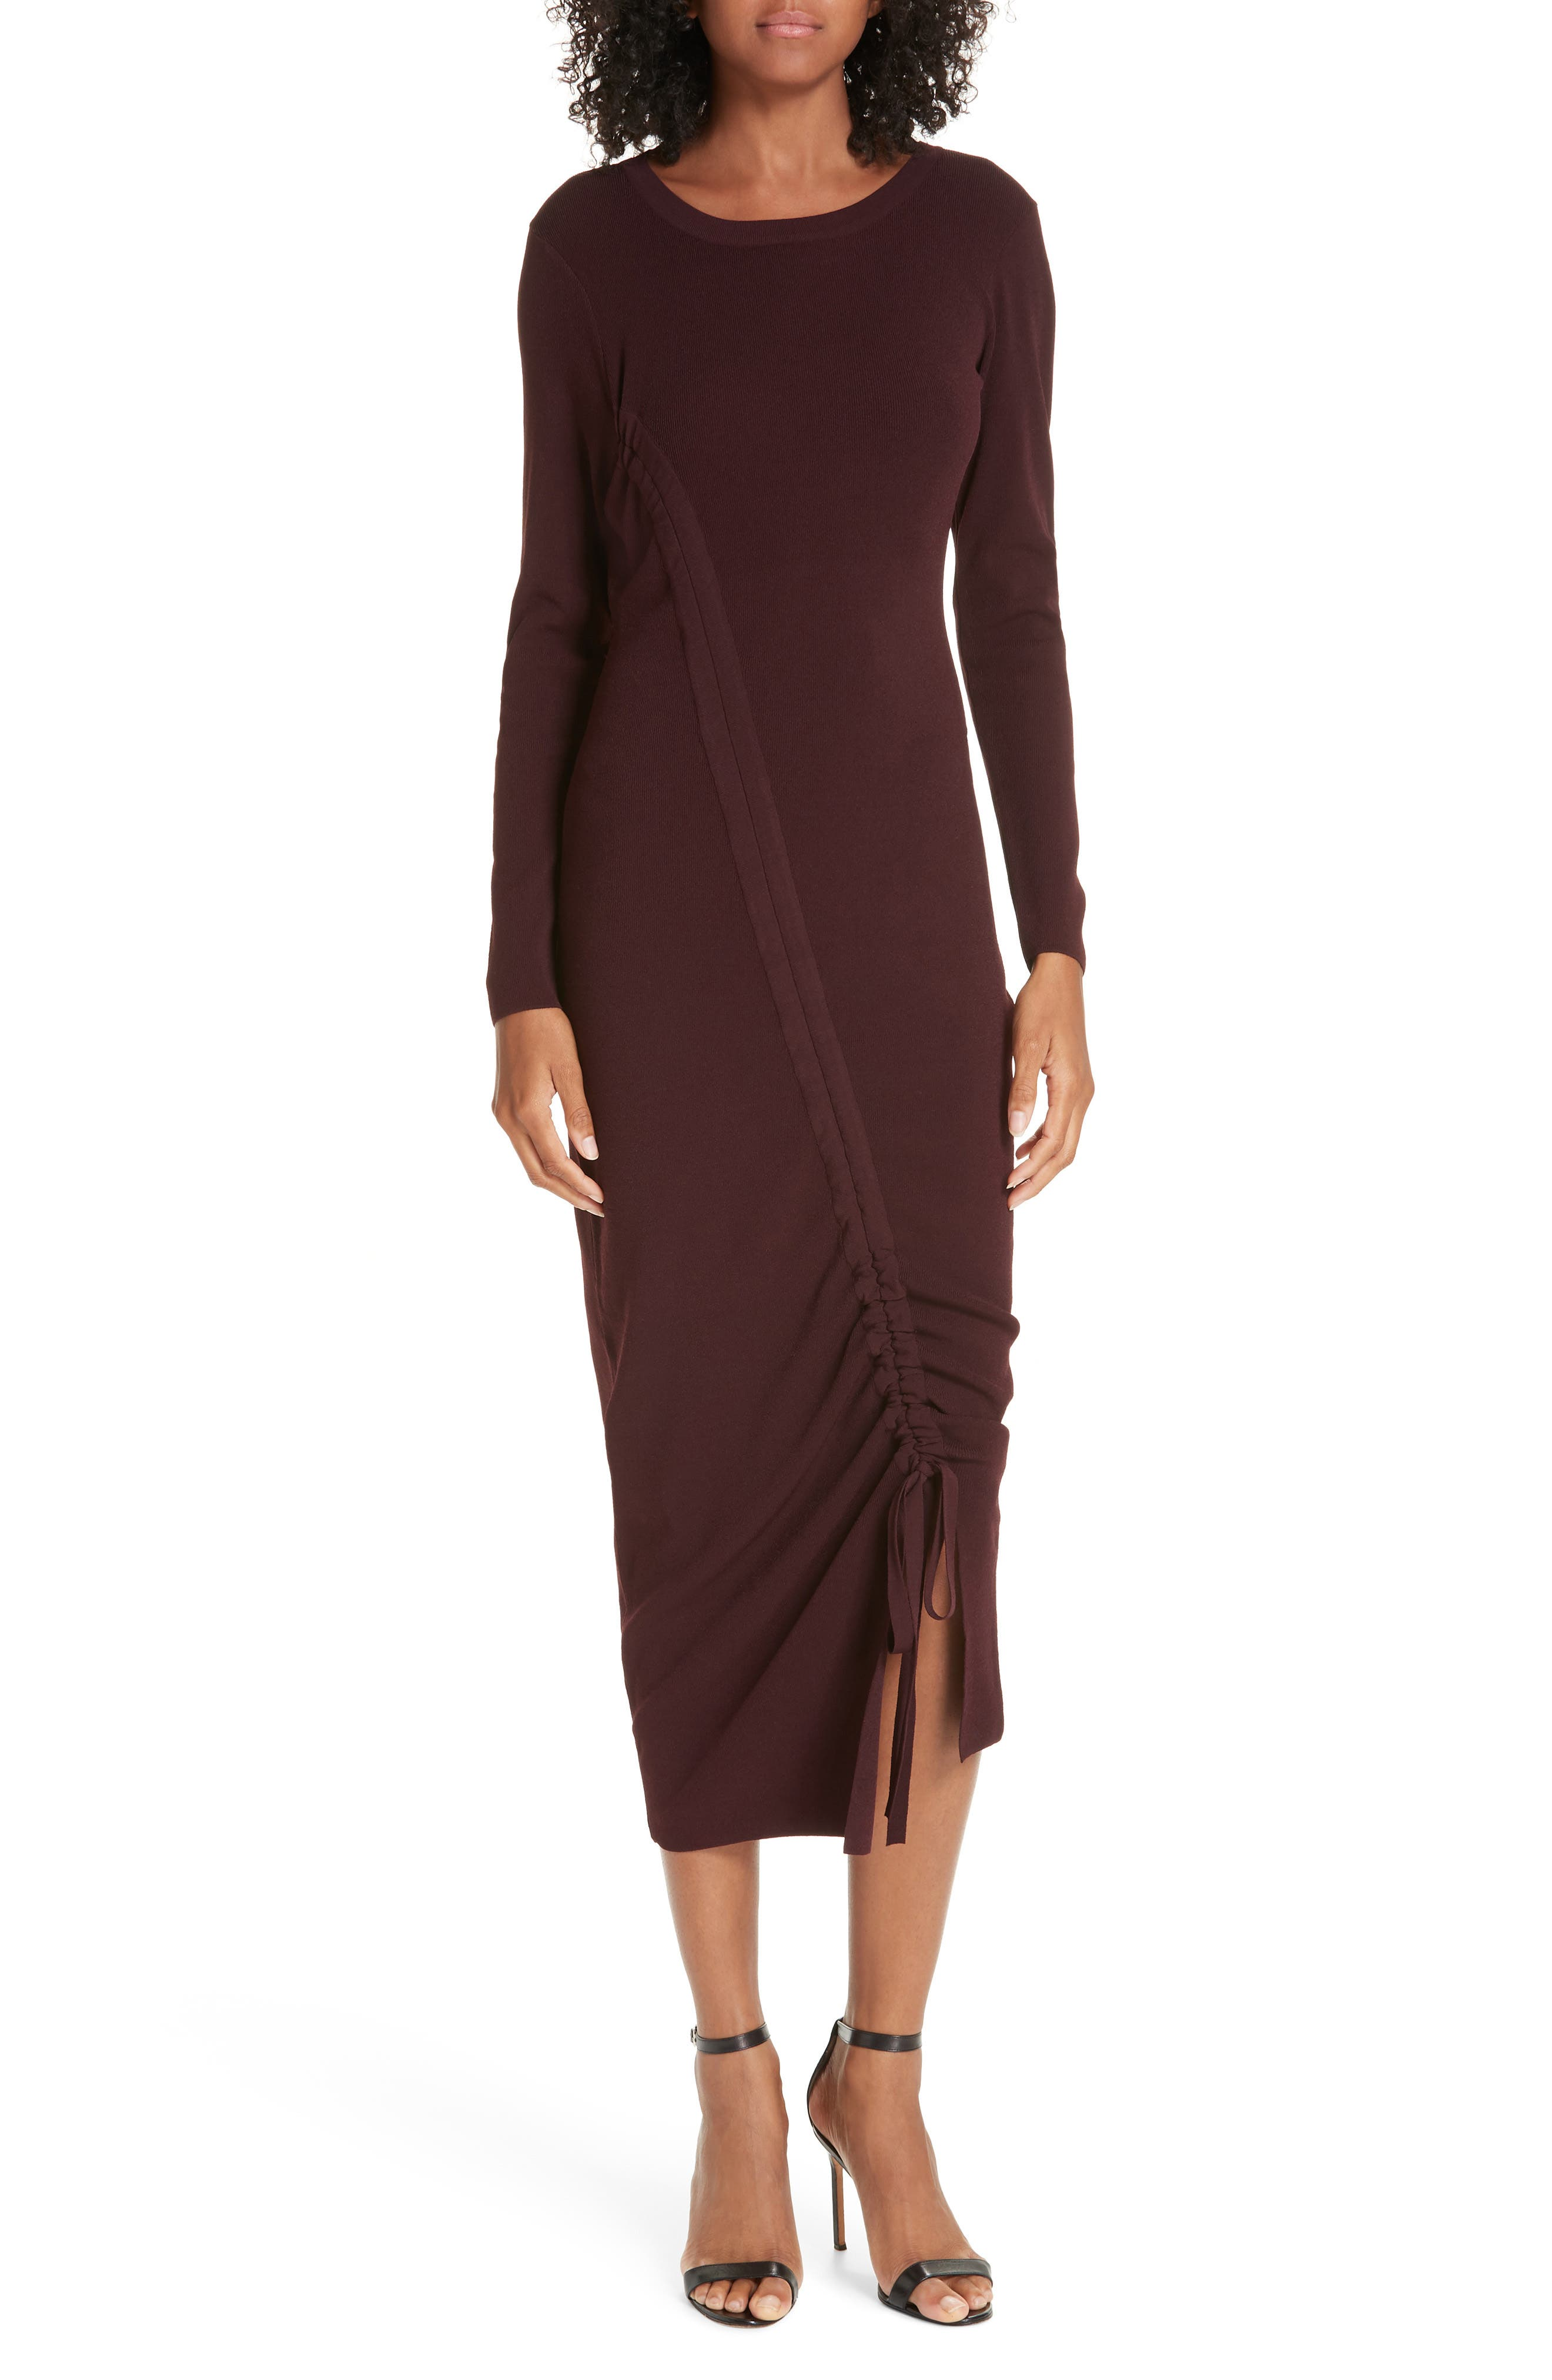 Milly Diagonal Ruched Tunnel Dress, Size Petite - Burgundy